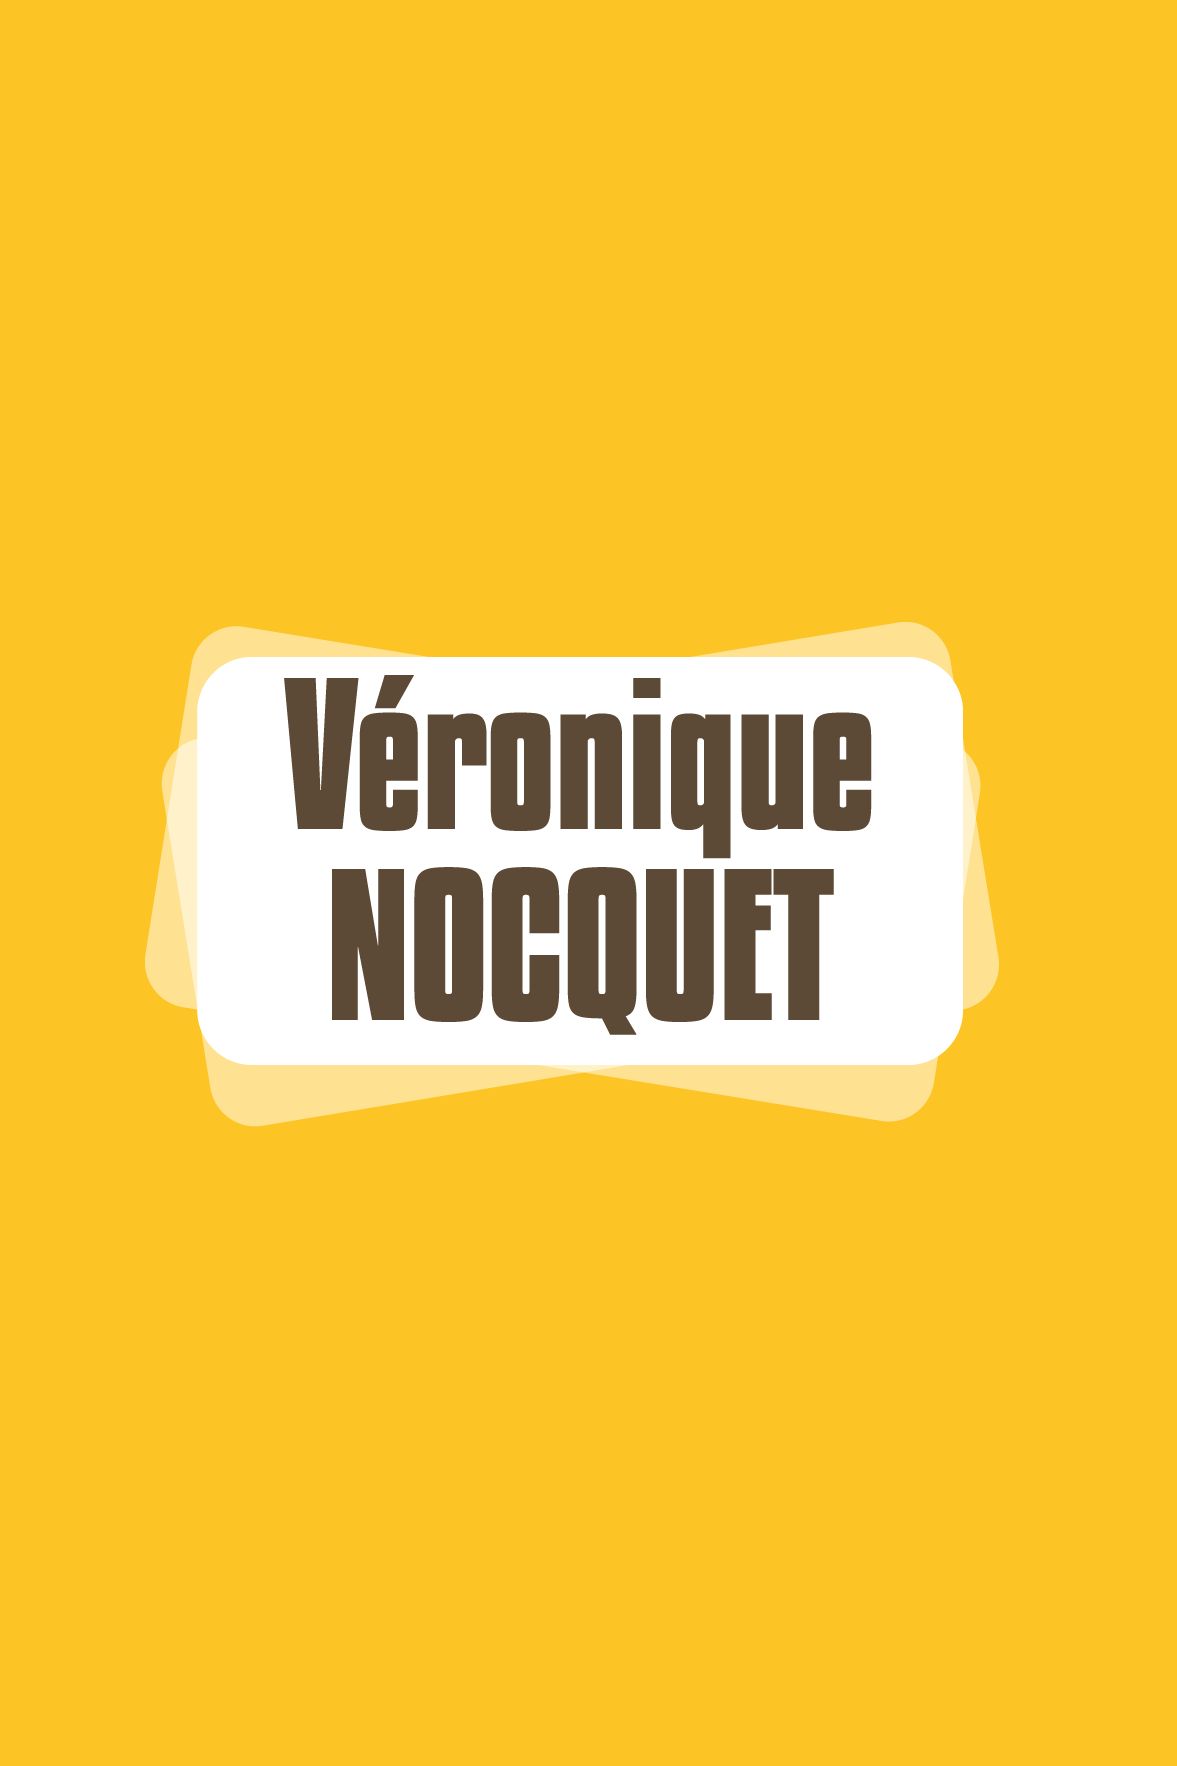 Veronique Nocquet Artee